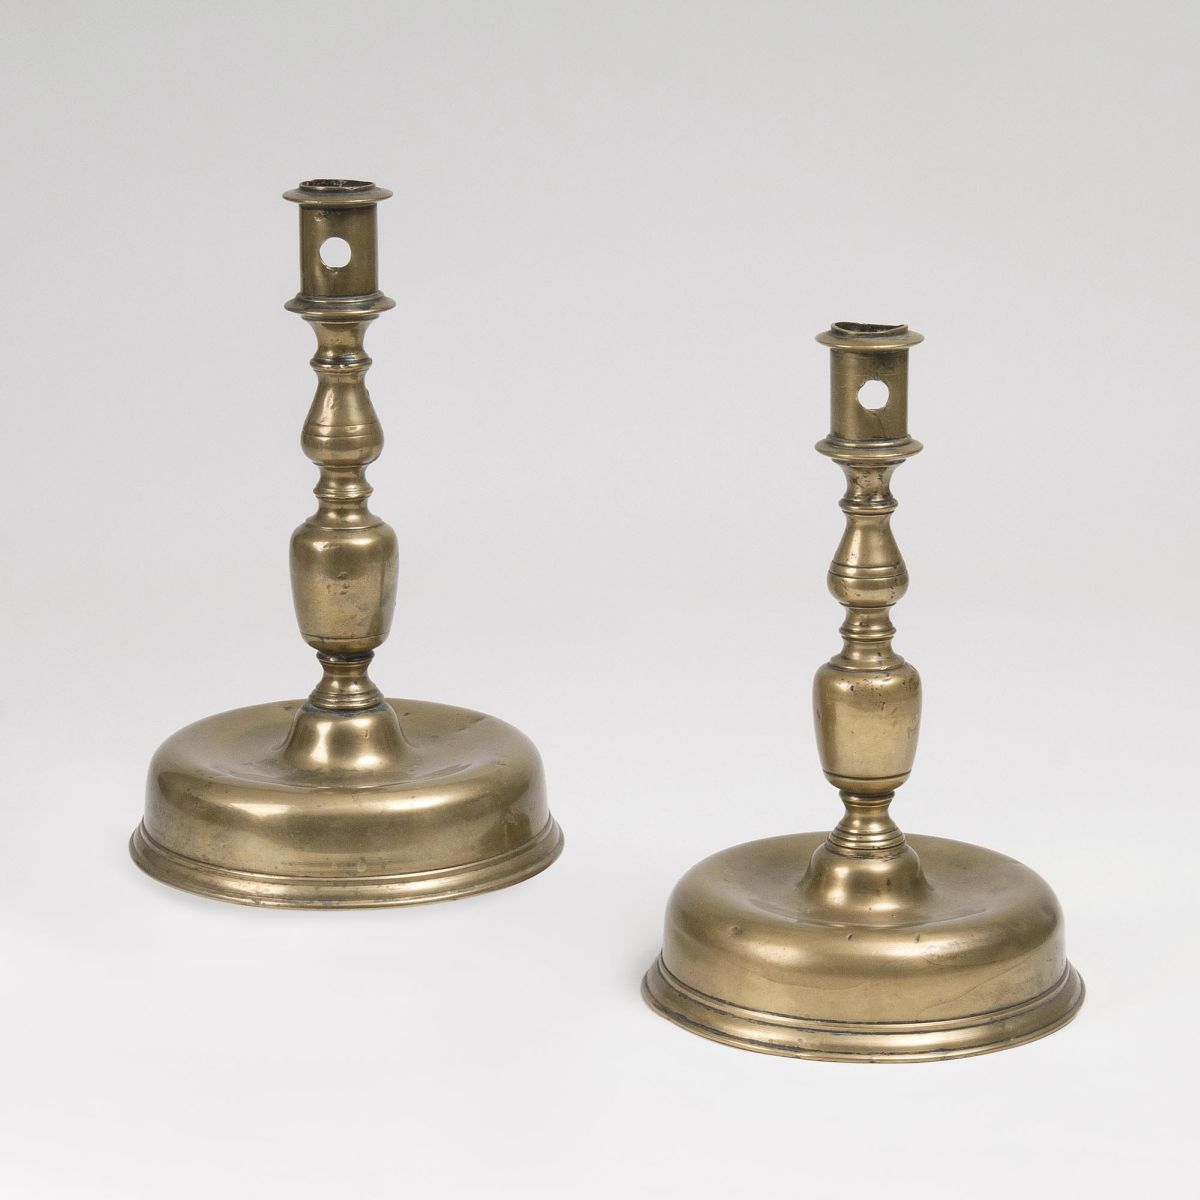 A Pair of Baroque Bell-shaped Candlesticks